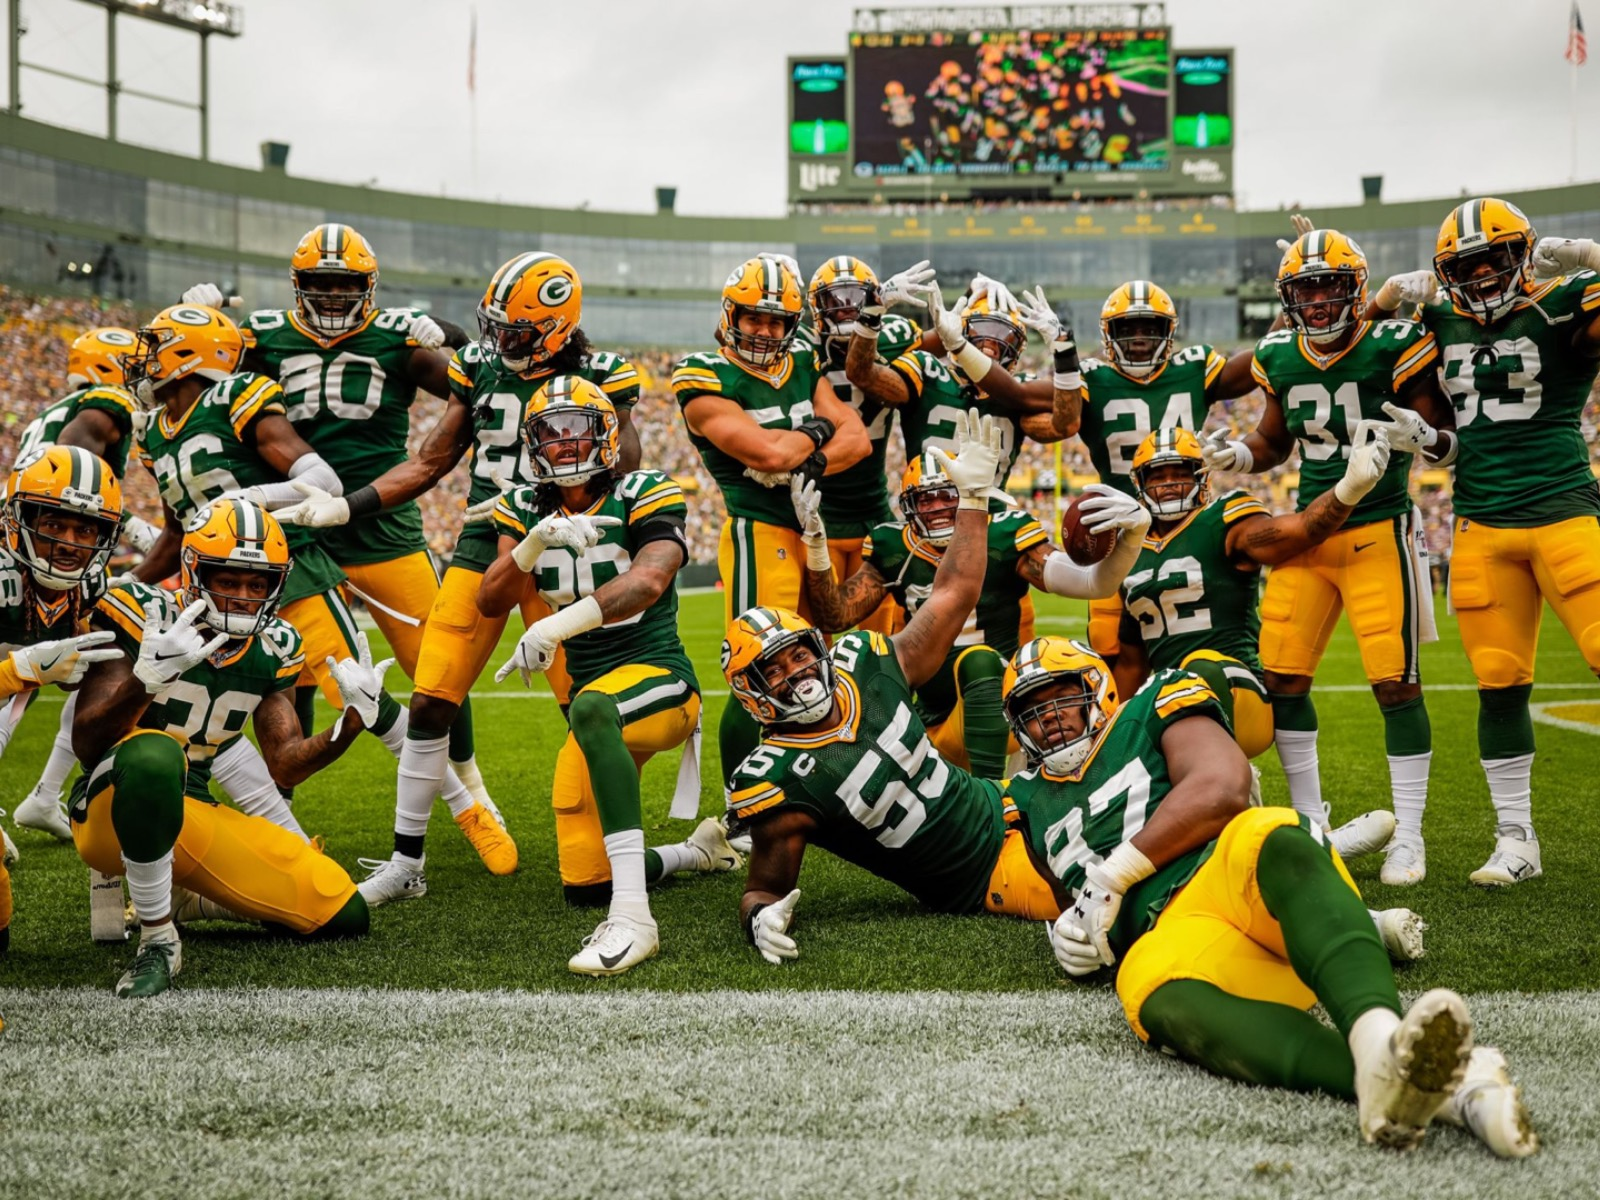 10 cool images from the Packers' cool